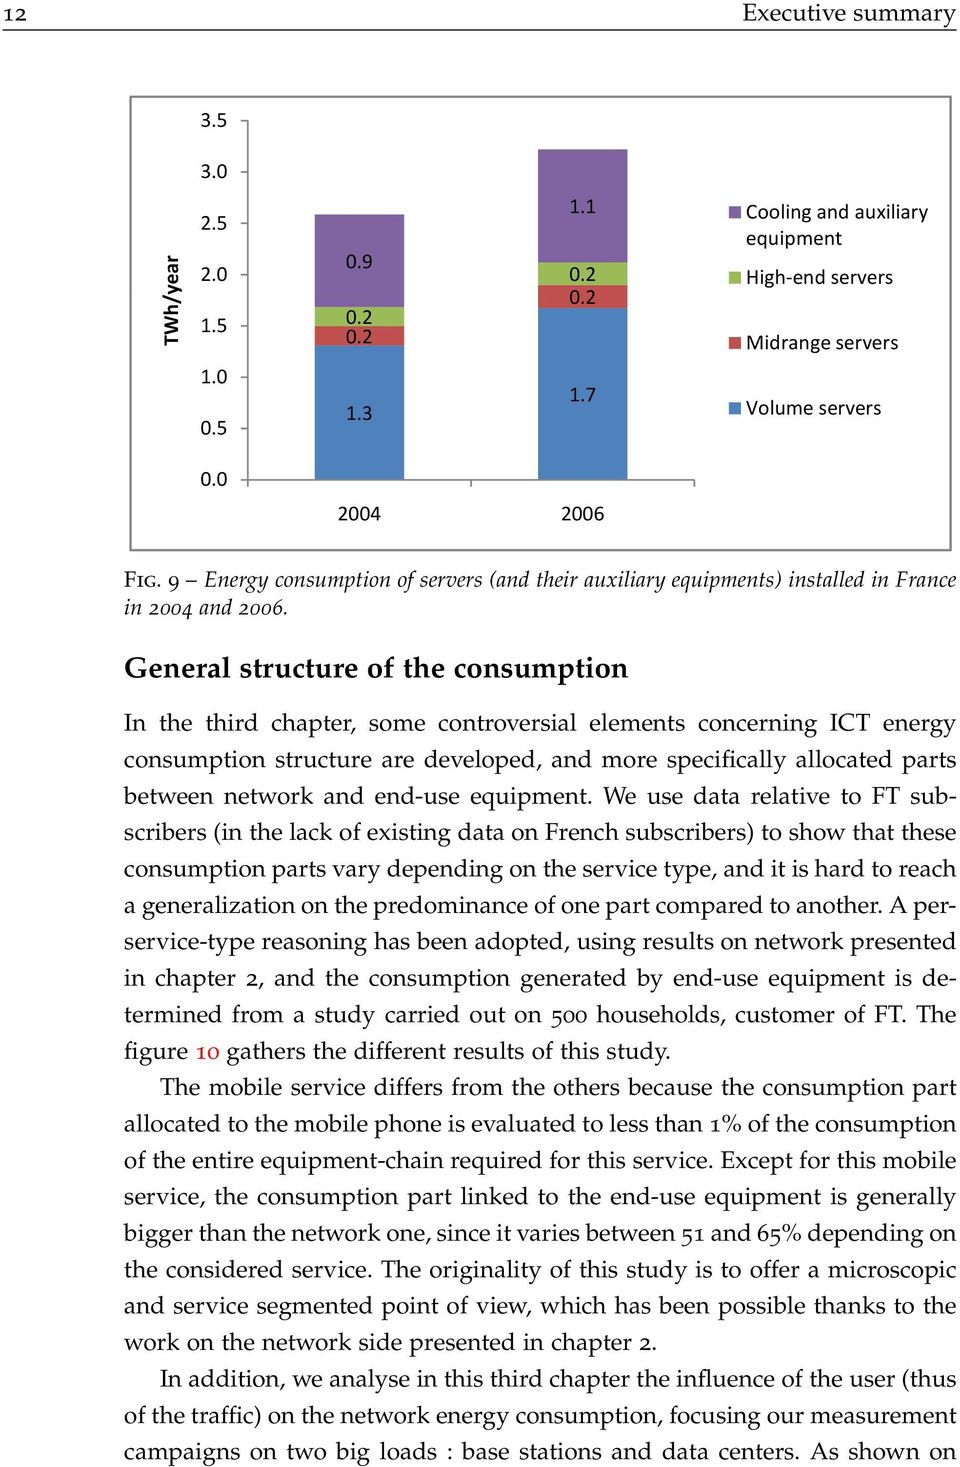 General structure of the consumption In the third chapter, some controversial elements concerning ICT energy consumption structure are developed, and more specifically allocated parts between network